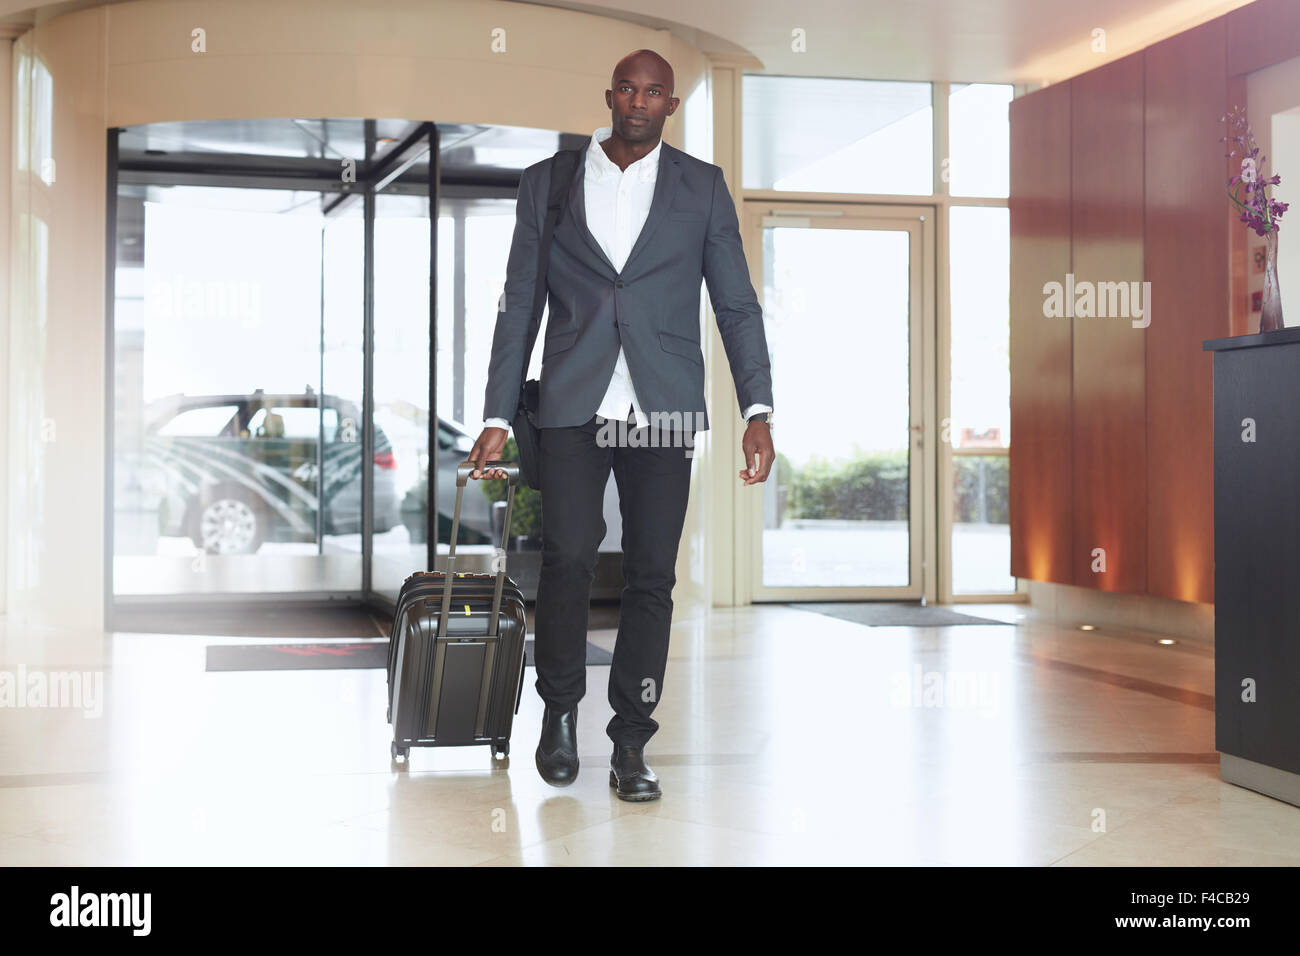 Businessman walking in hotel lobby. Full length portrait of young african executive with a suitcase. - Stock Image